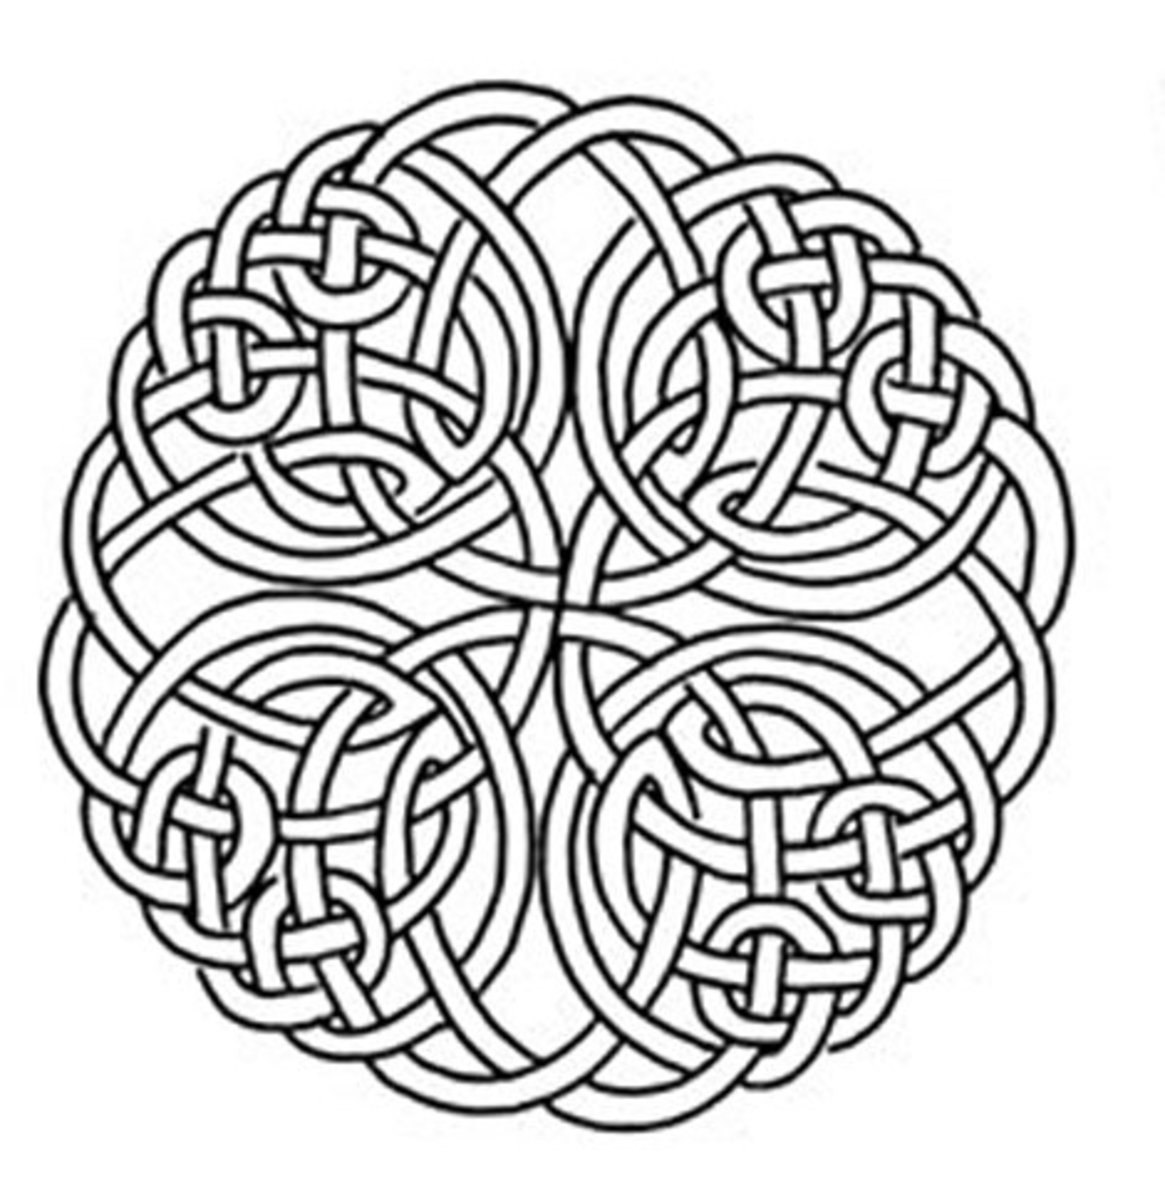 Celtic Design Art Coloring Pages for Kids Colouring Pictures to Print - Tribal Pattern